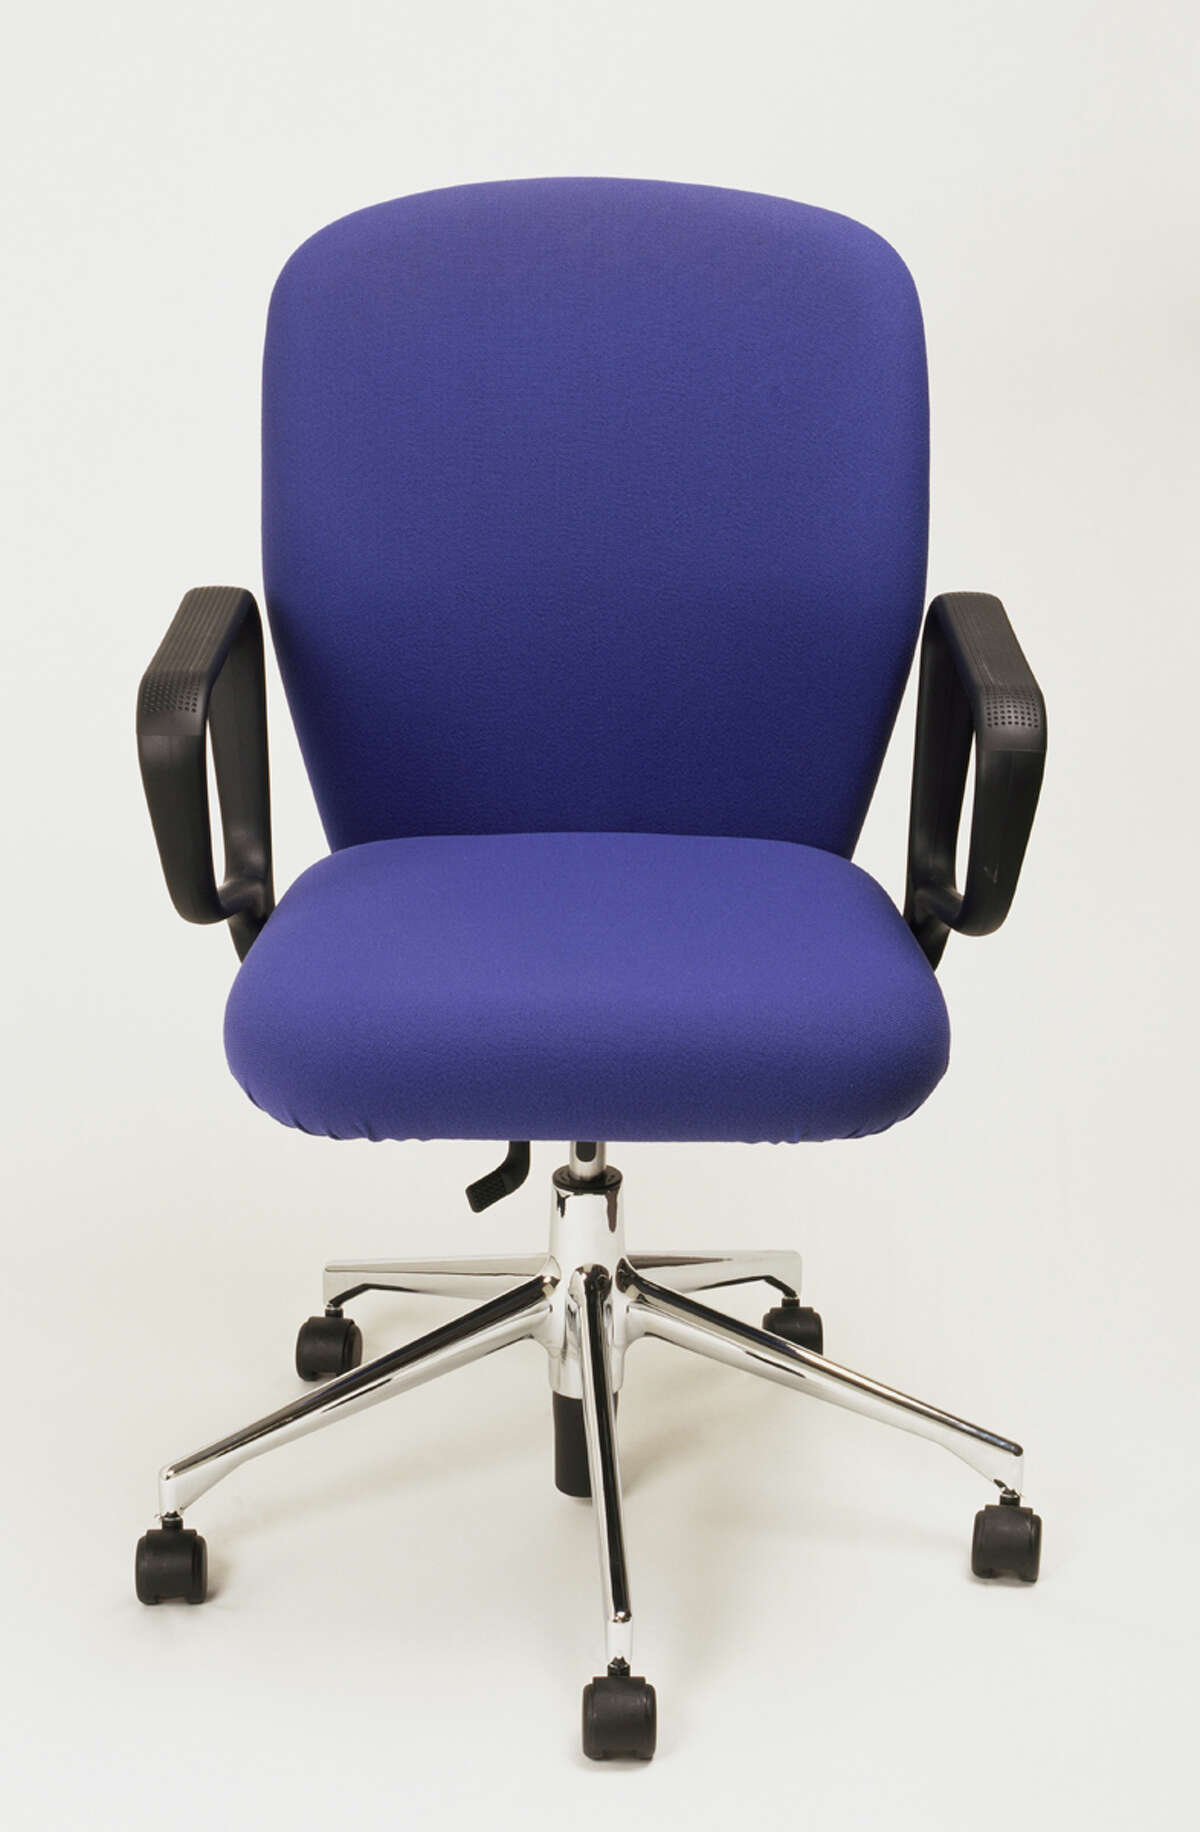 Office Chair AssemblyEstimated Amazon Services Cost: $75-$140